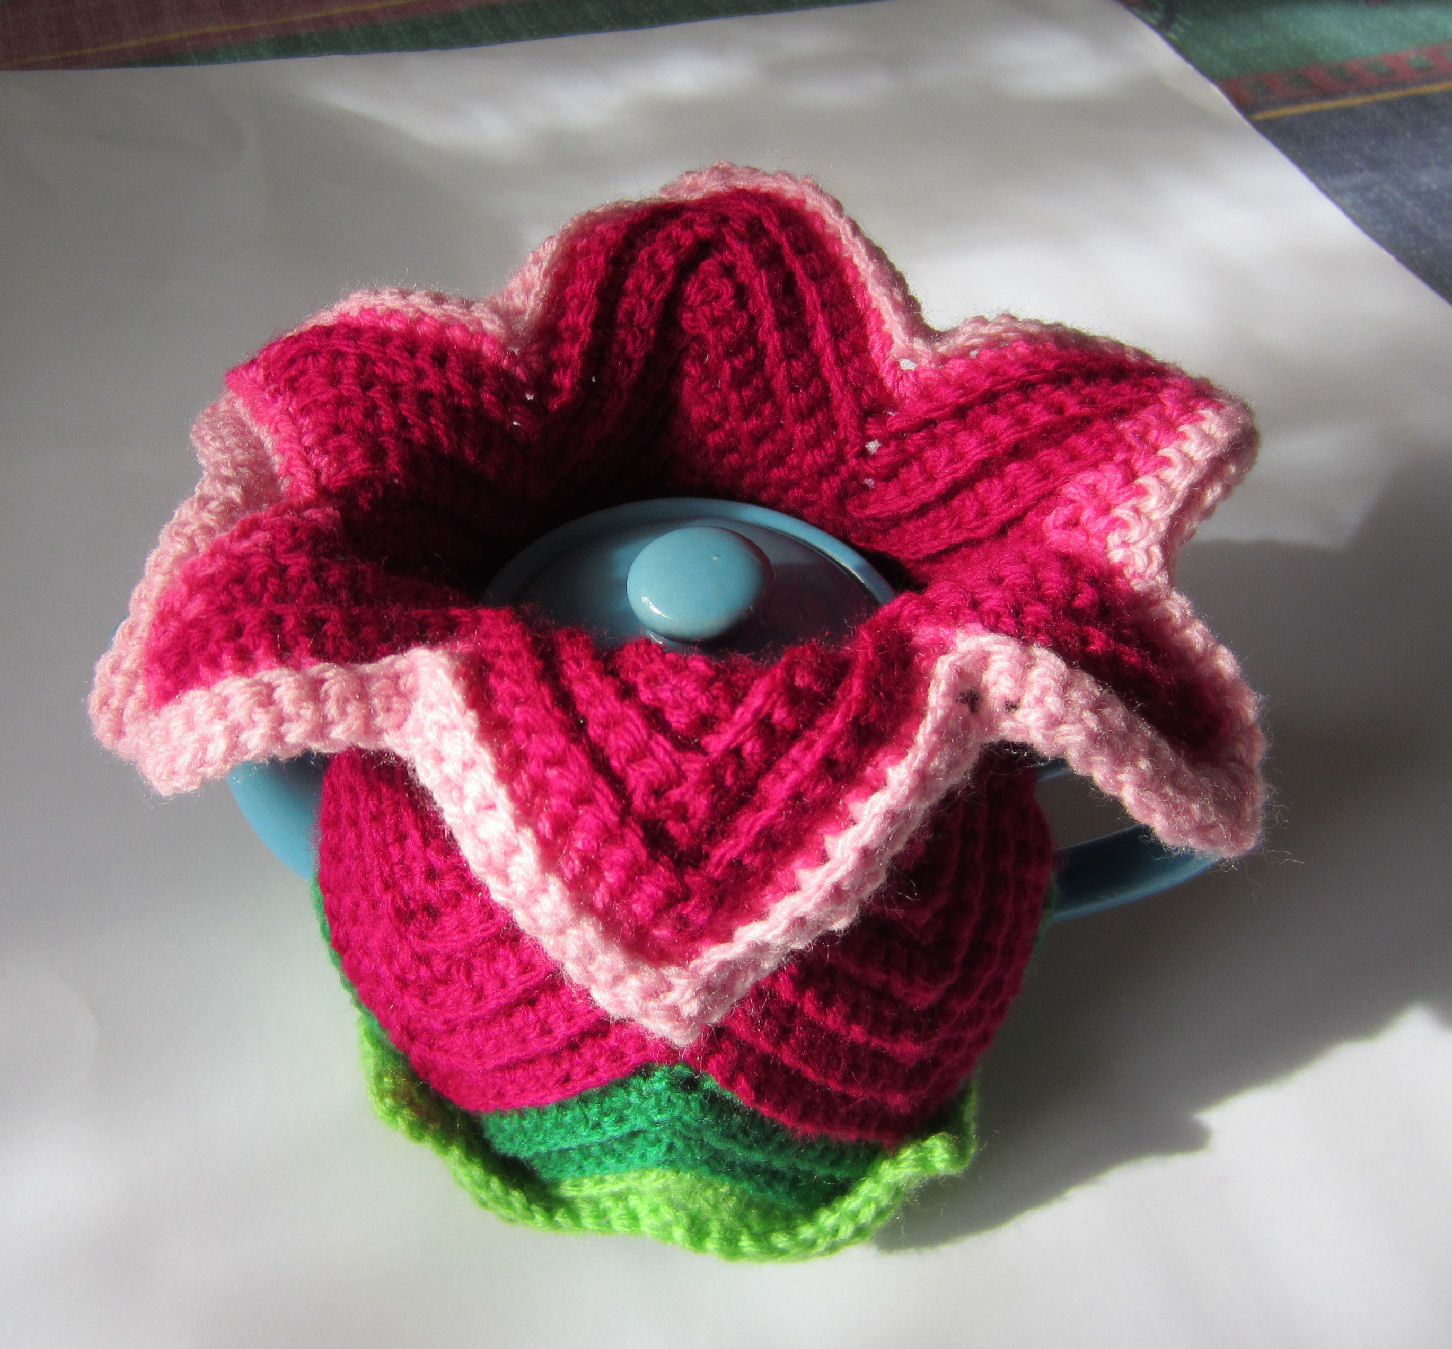 Justjen-knits&stitches: Daylily Tea Cosy For Mother\'s Day - Crochet